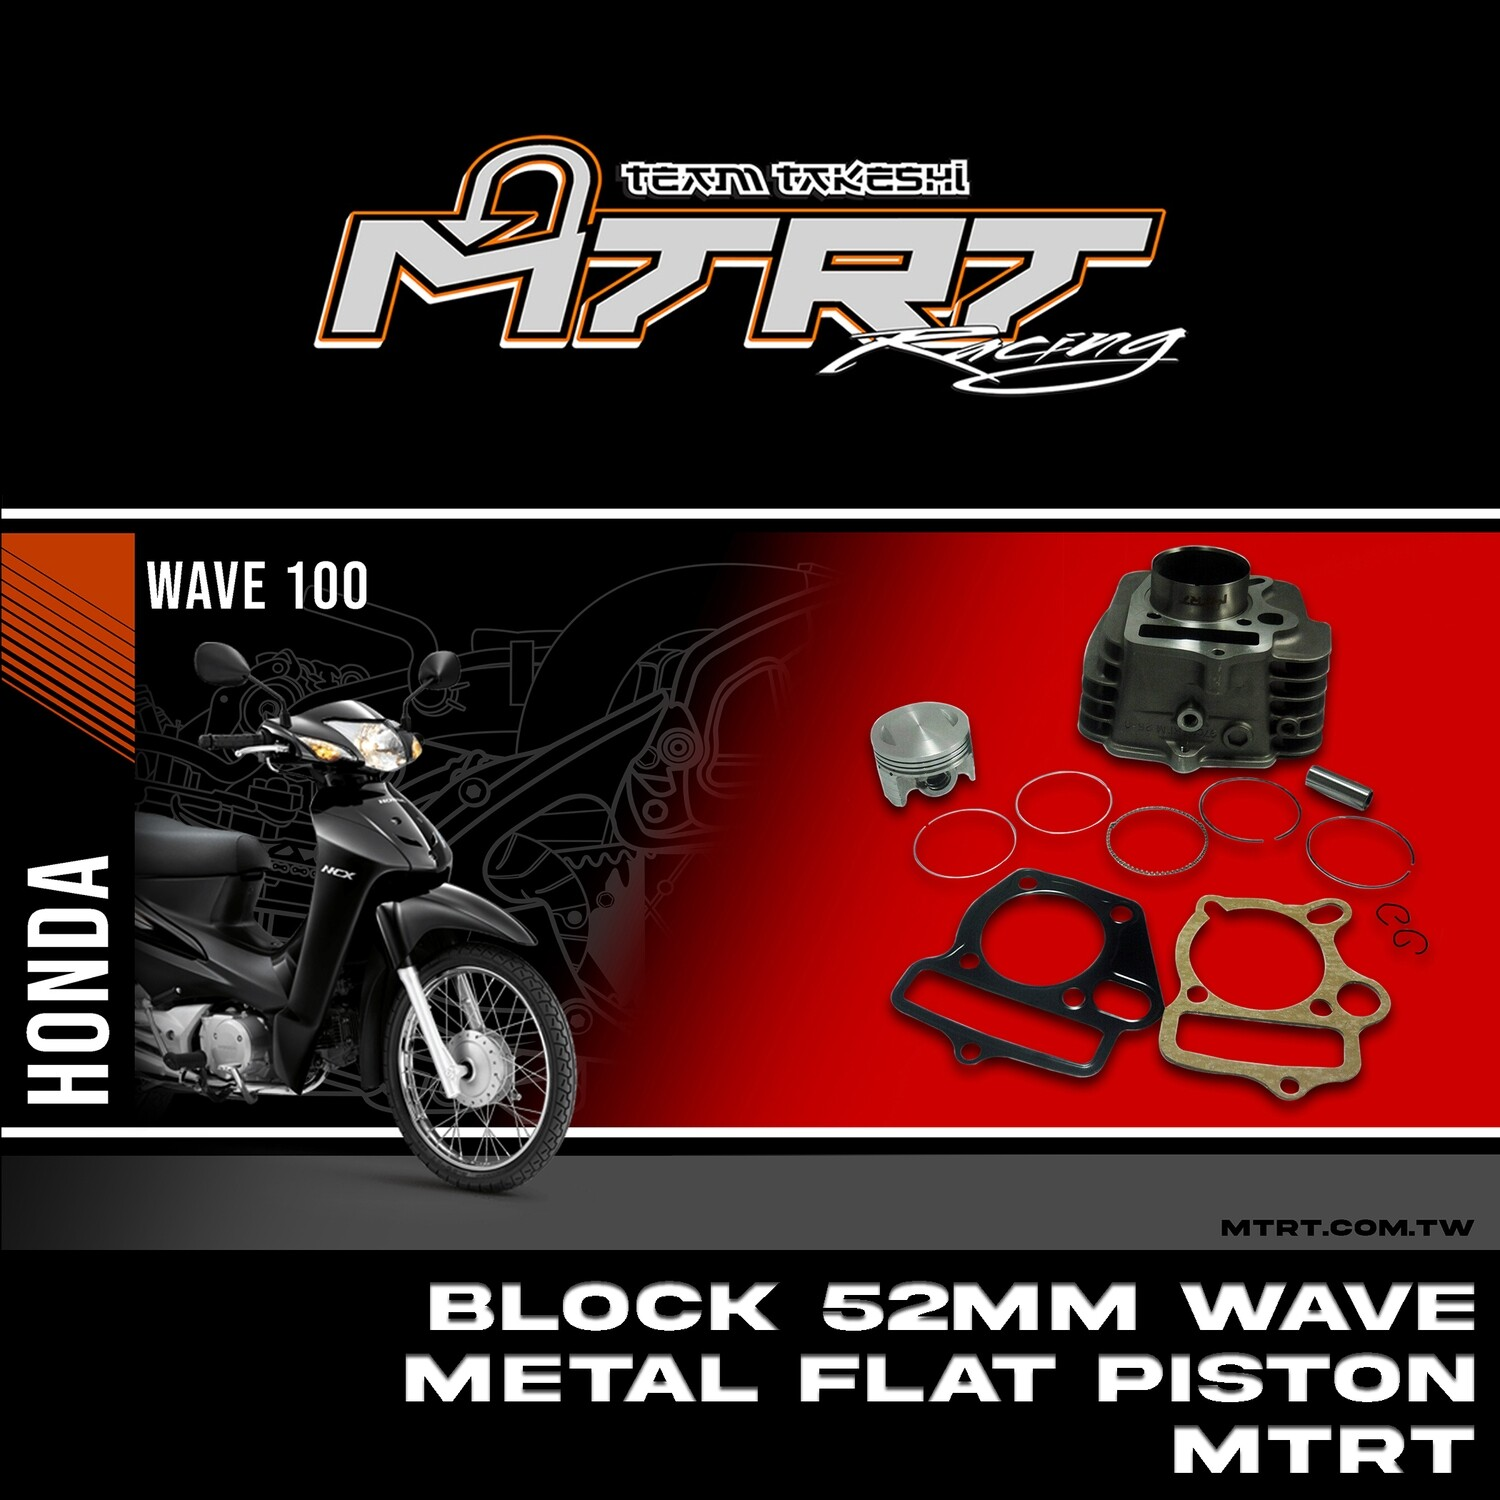 BLOCK 52MM Wave100 METAL Flat Piston MTRT